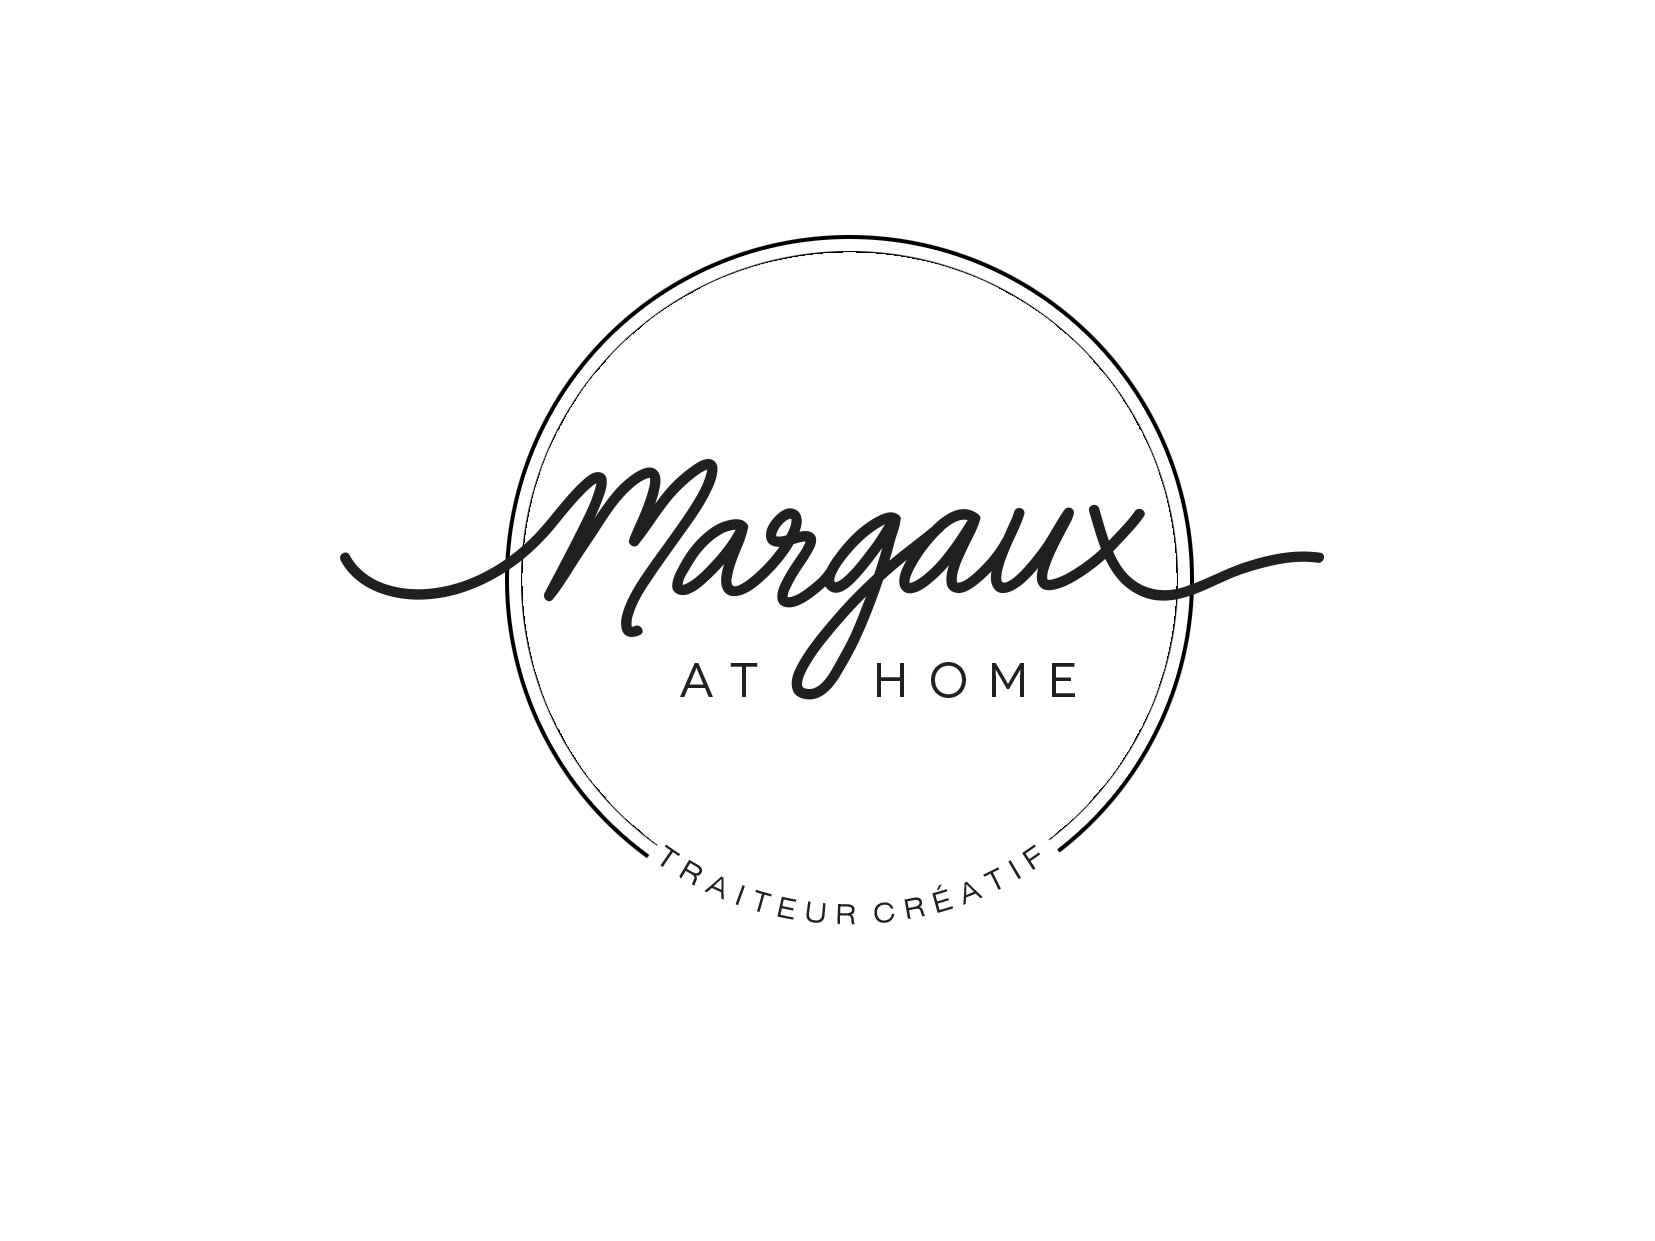 Margaux at Home - Traiteur et catering original sur Lille